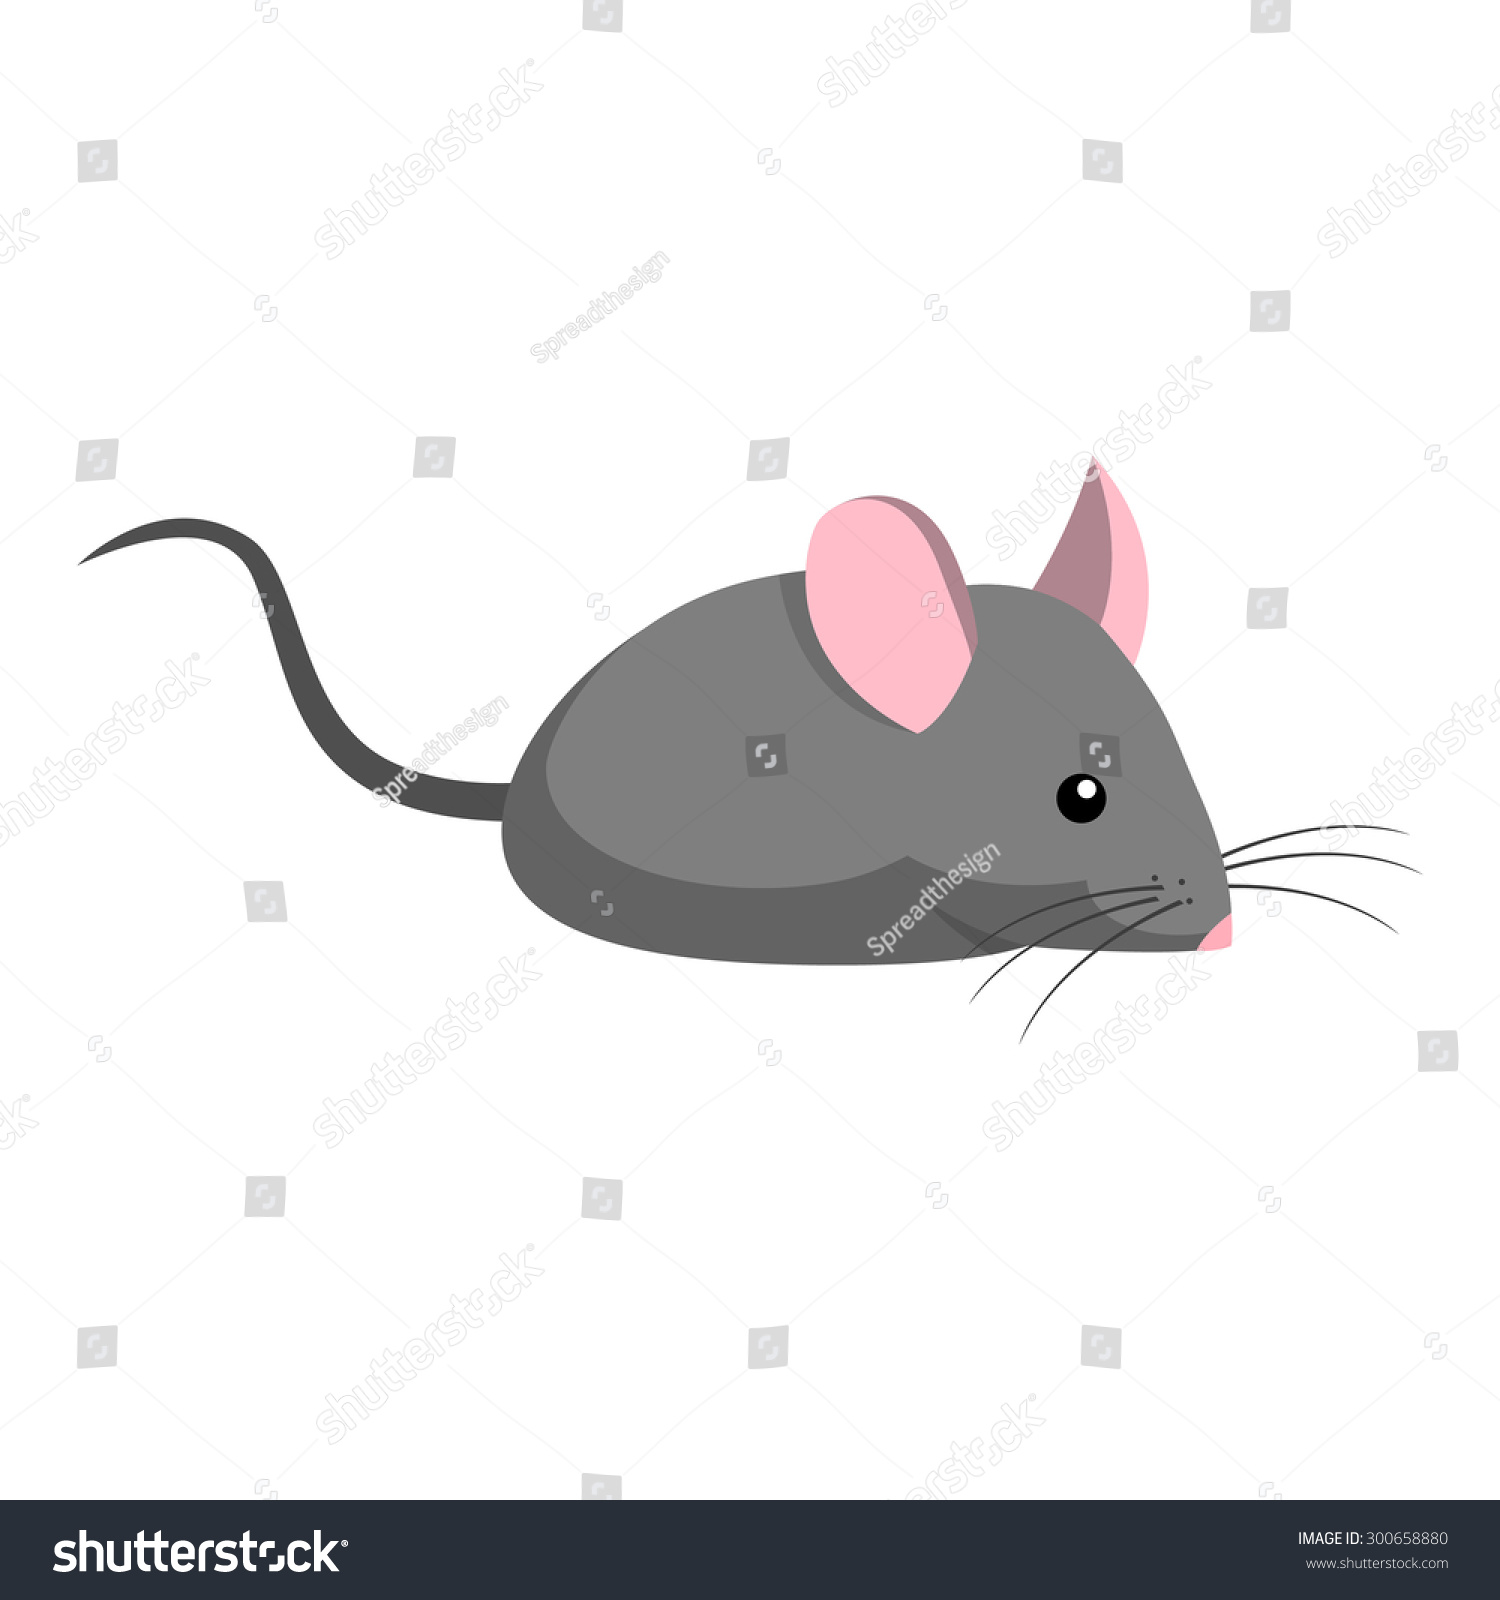 Cute Mouse Cartoon Stock Vector 300658880 : Shutterstock